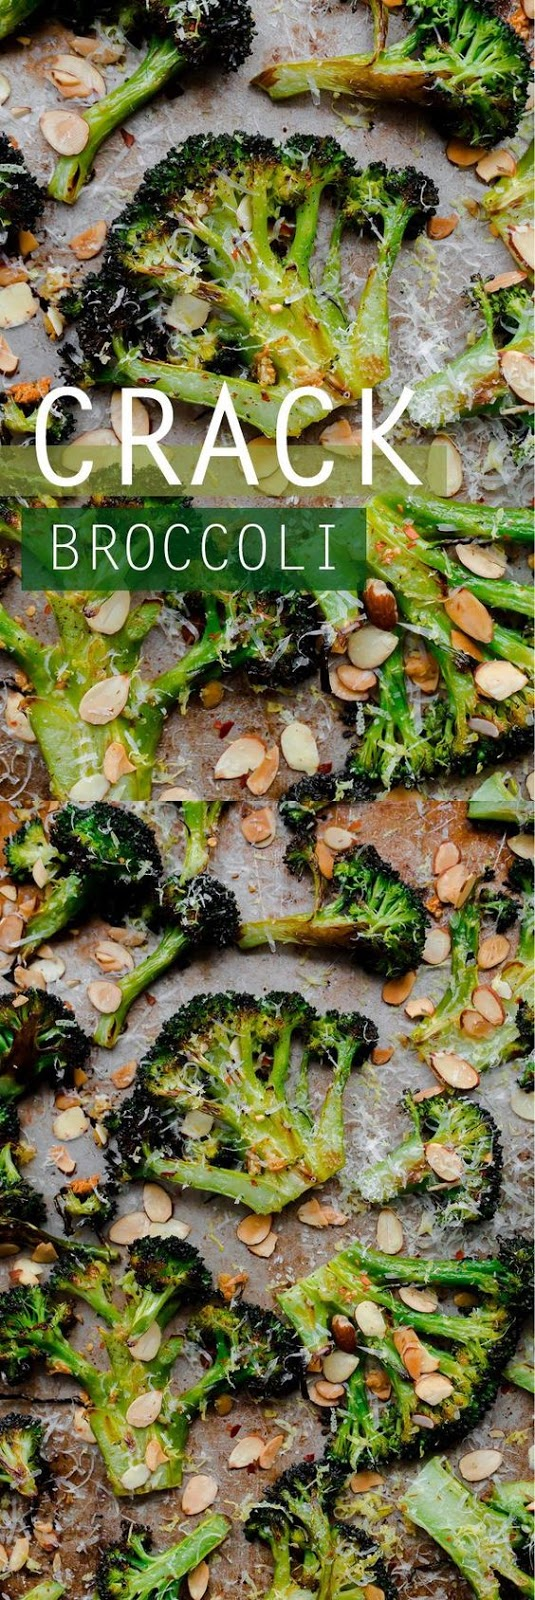 CRACK BROCCOLI (BEST ROASTED BROCCOLI RECIPE) #crack #broccoli #bestroasted #veggies #vegetablesrecipes #vegetarianrecipes #veganrecipes